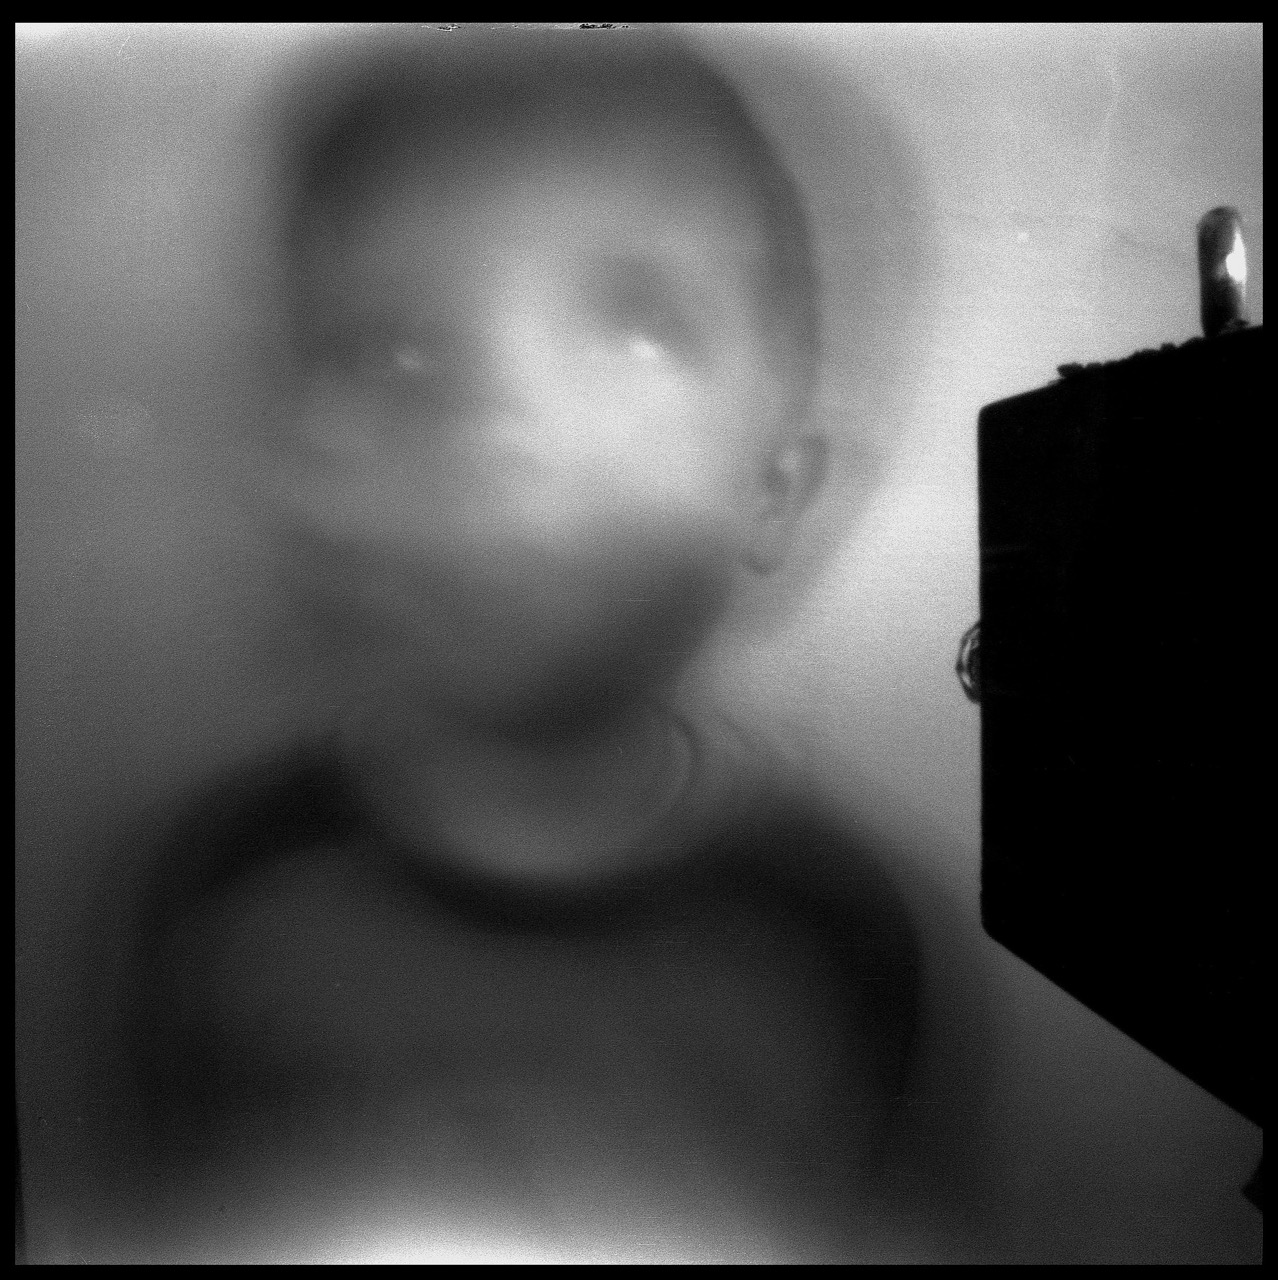 Pinhole Session with Ben, ©Bernie Vander Wal 2016